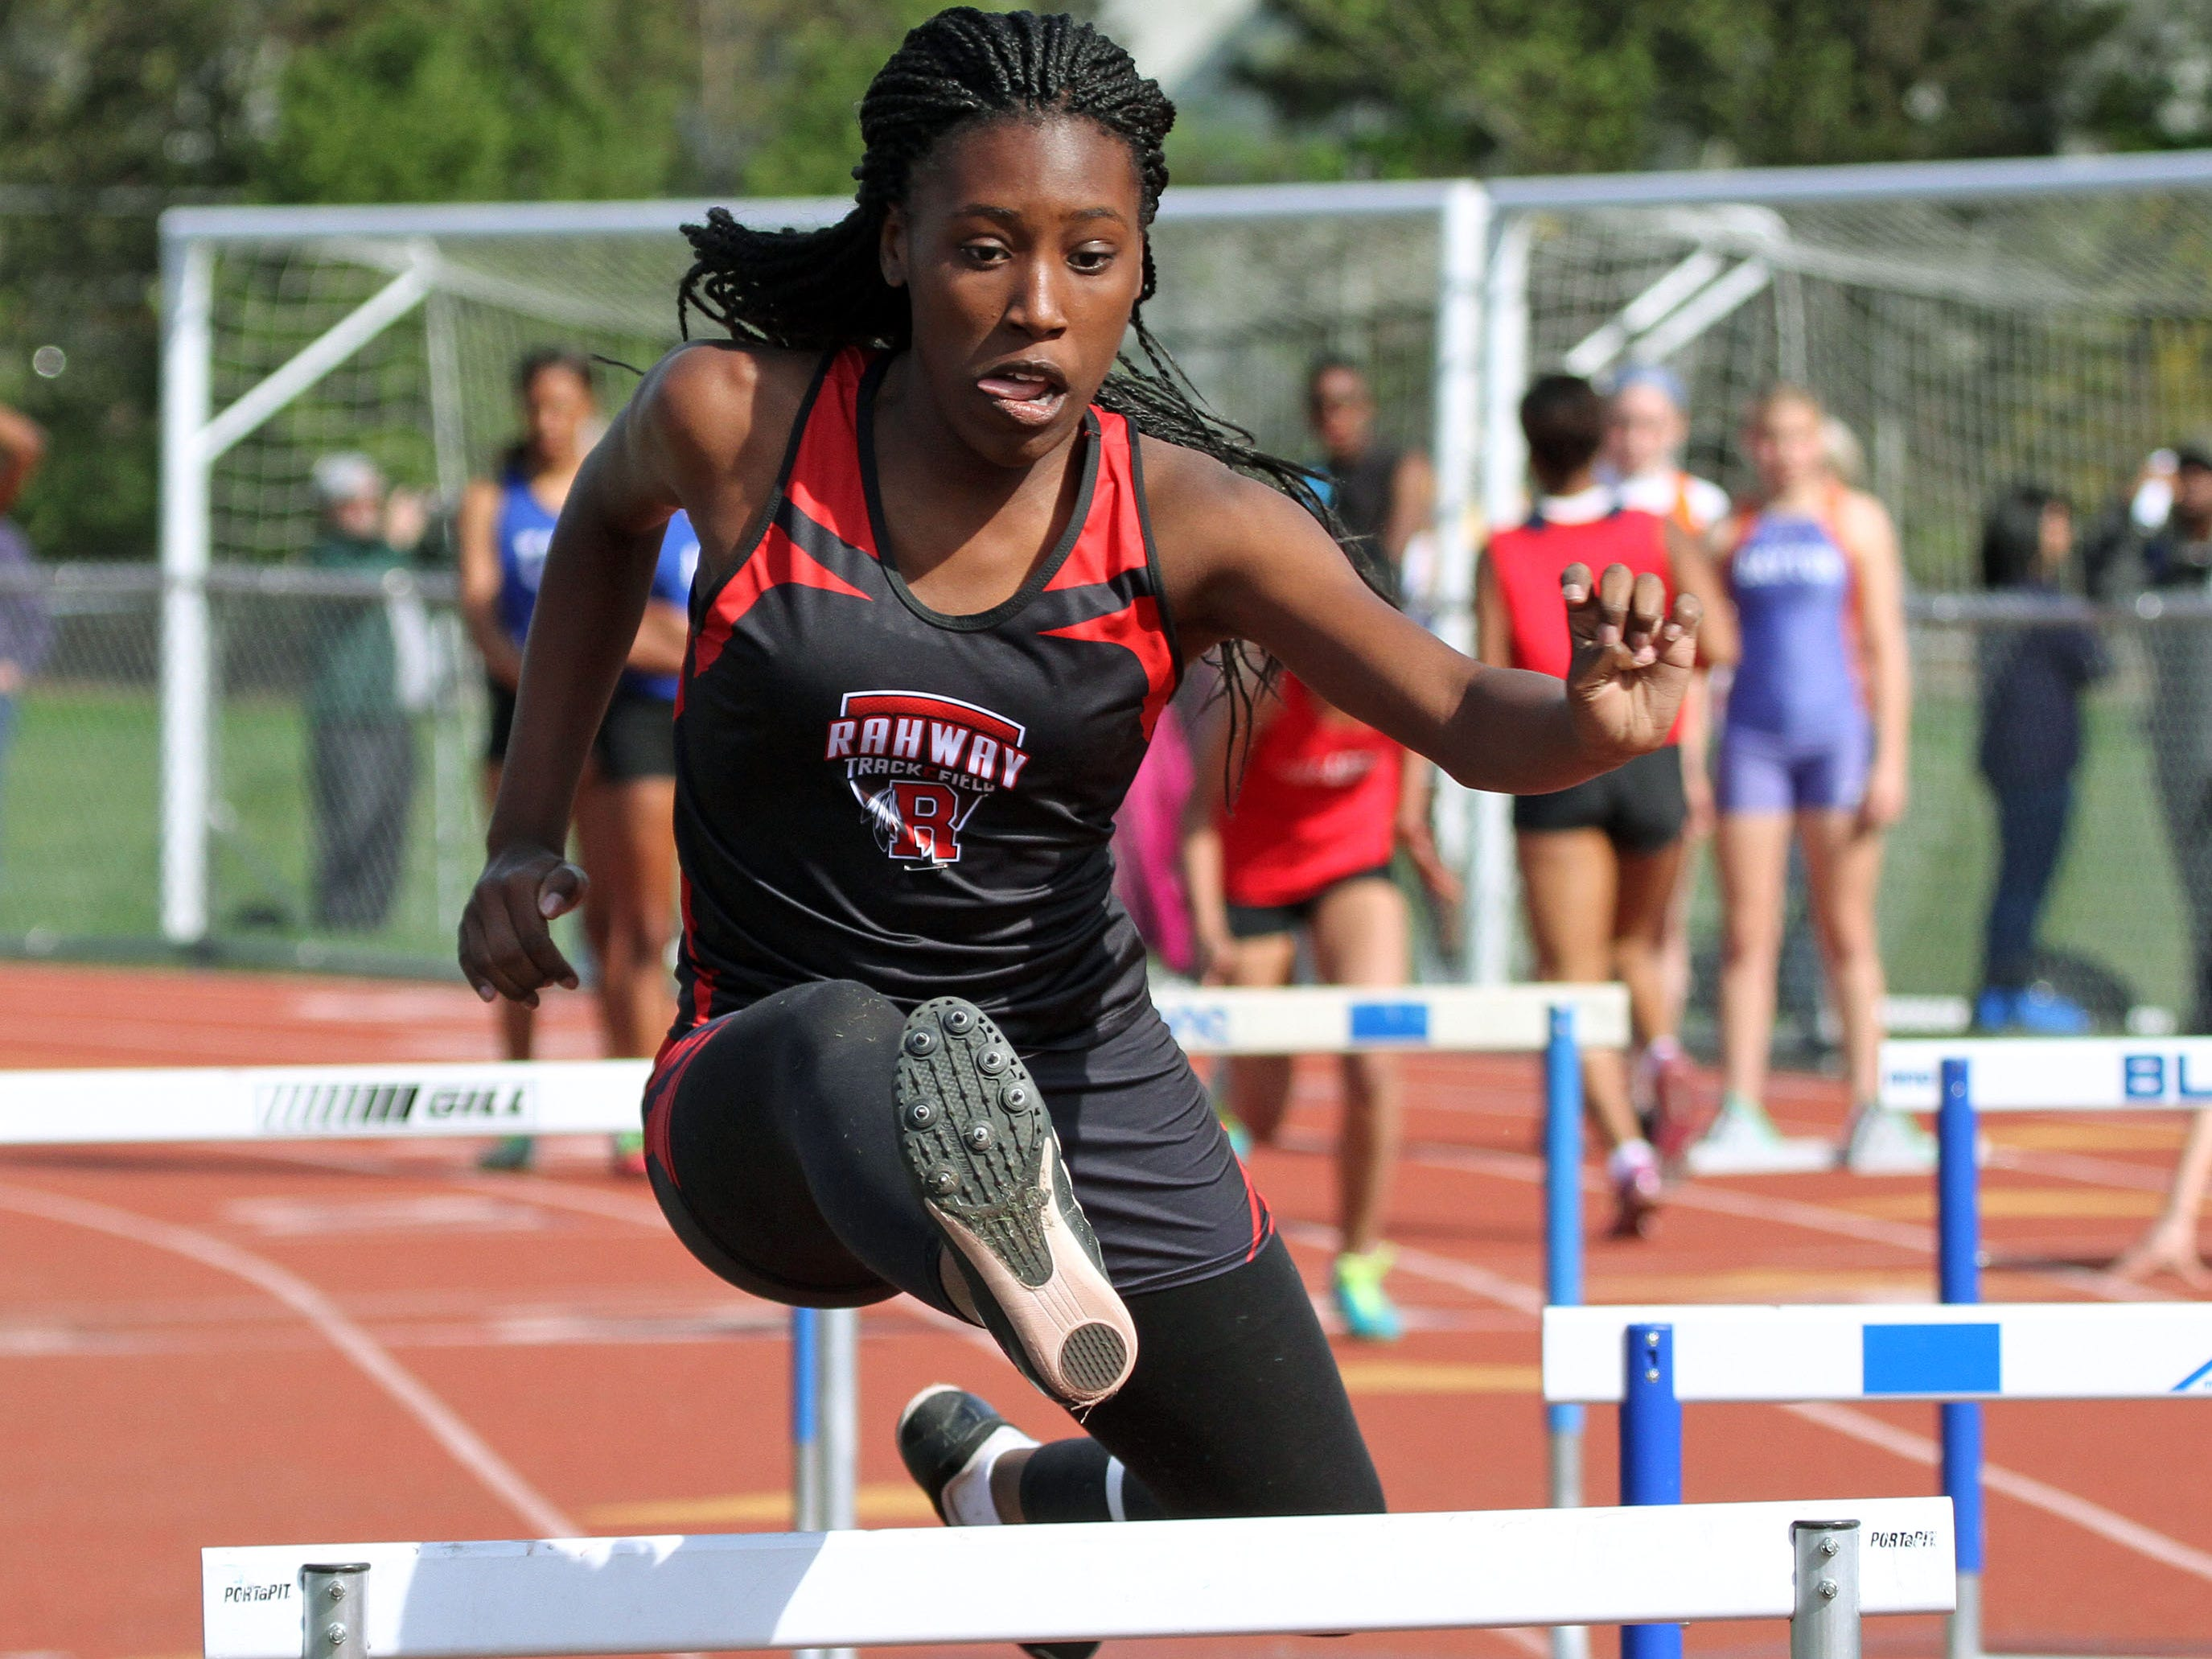 Rahway's Najah Hetsberger runs the thrid leg of her team's shuttle hurdles. This is action of the Union County Track and Field Relays.